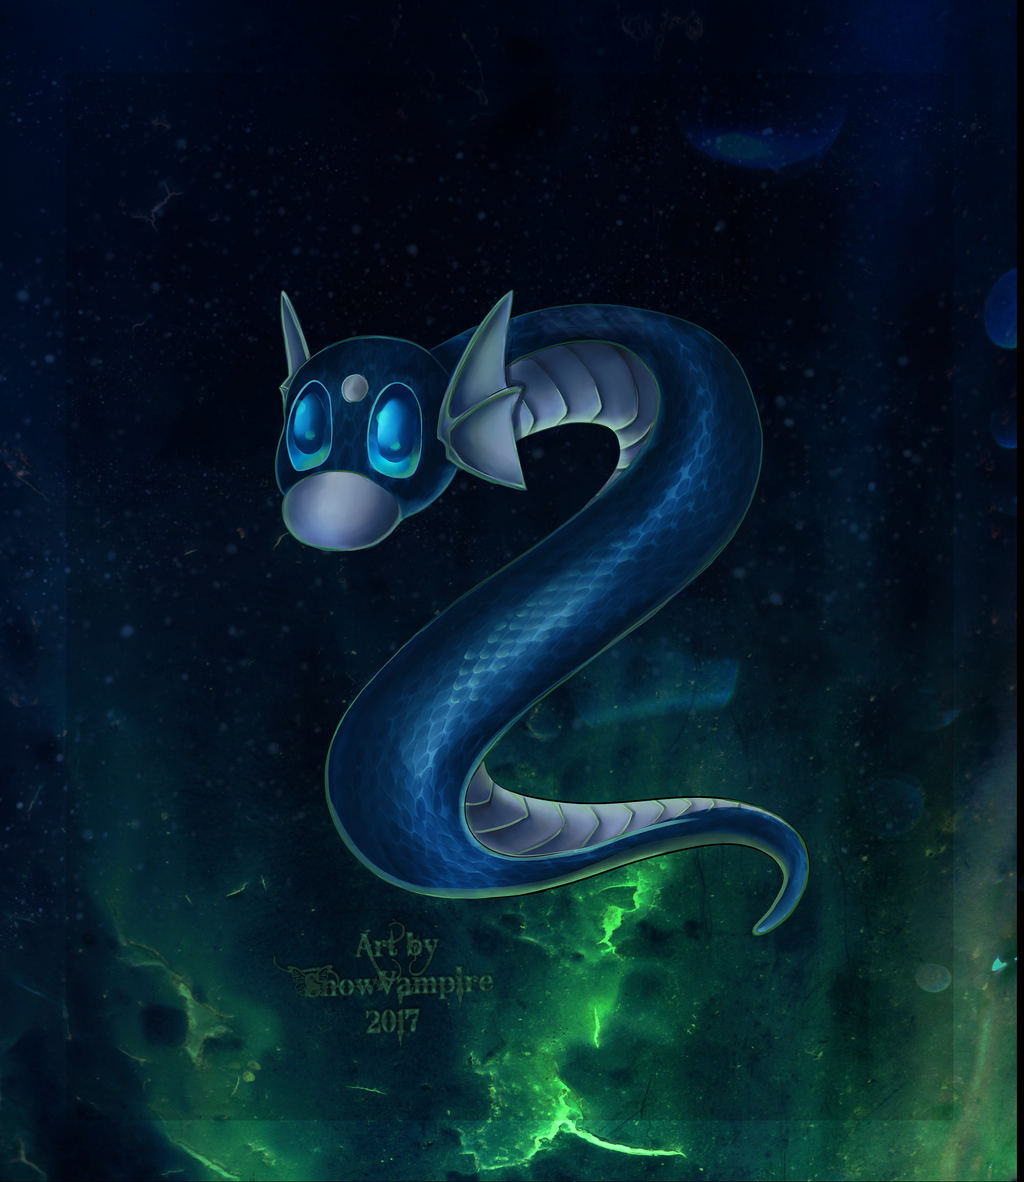 Most recent image: dratini commission